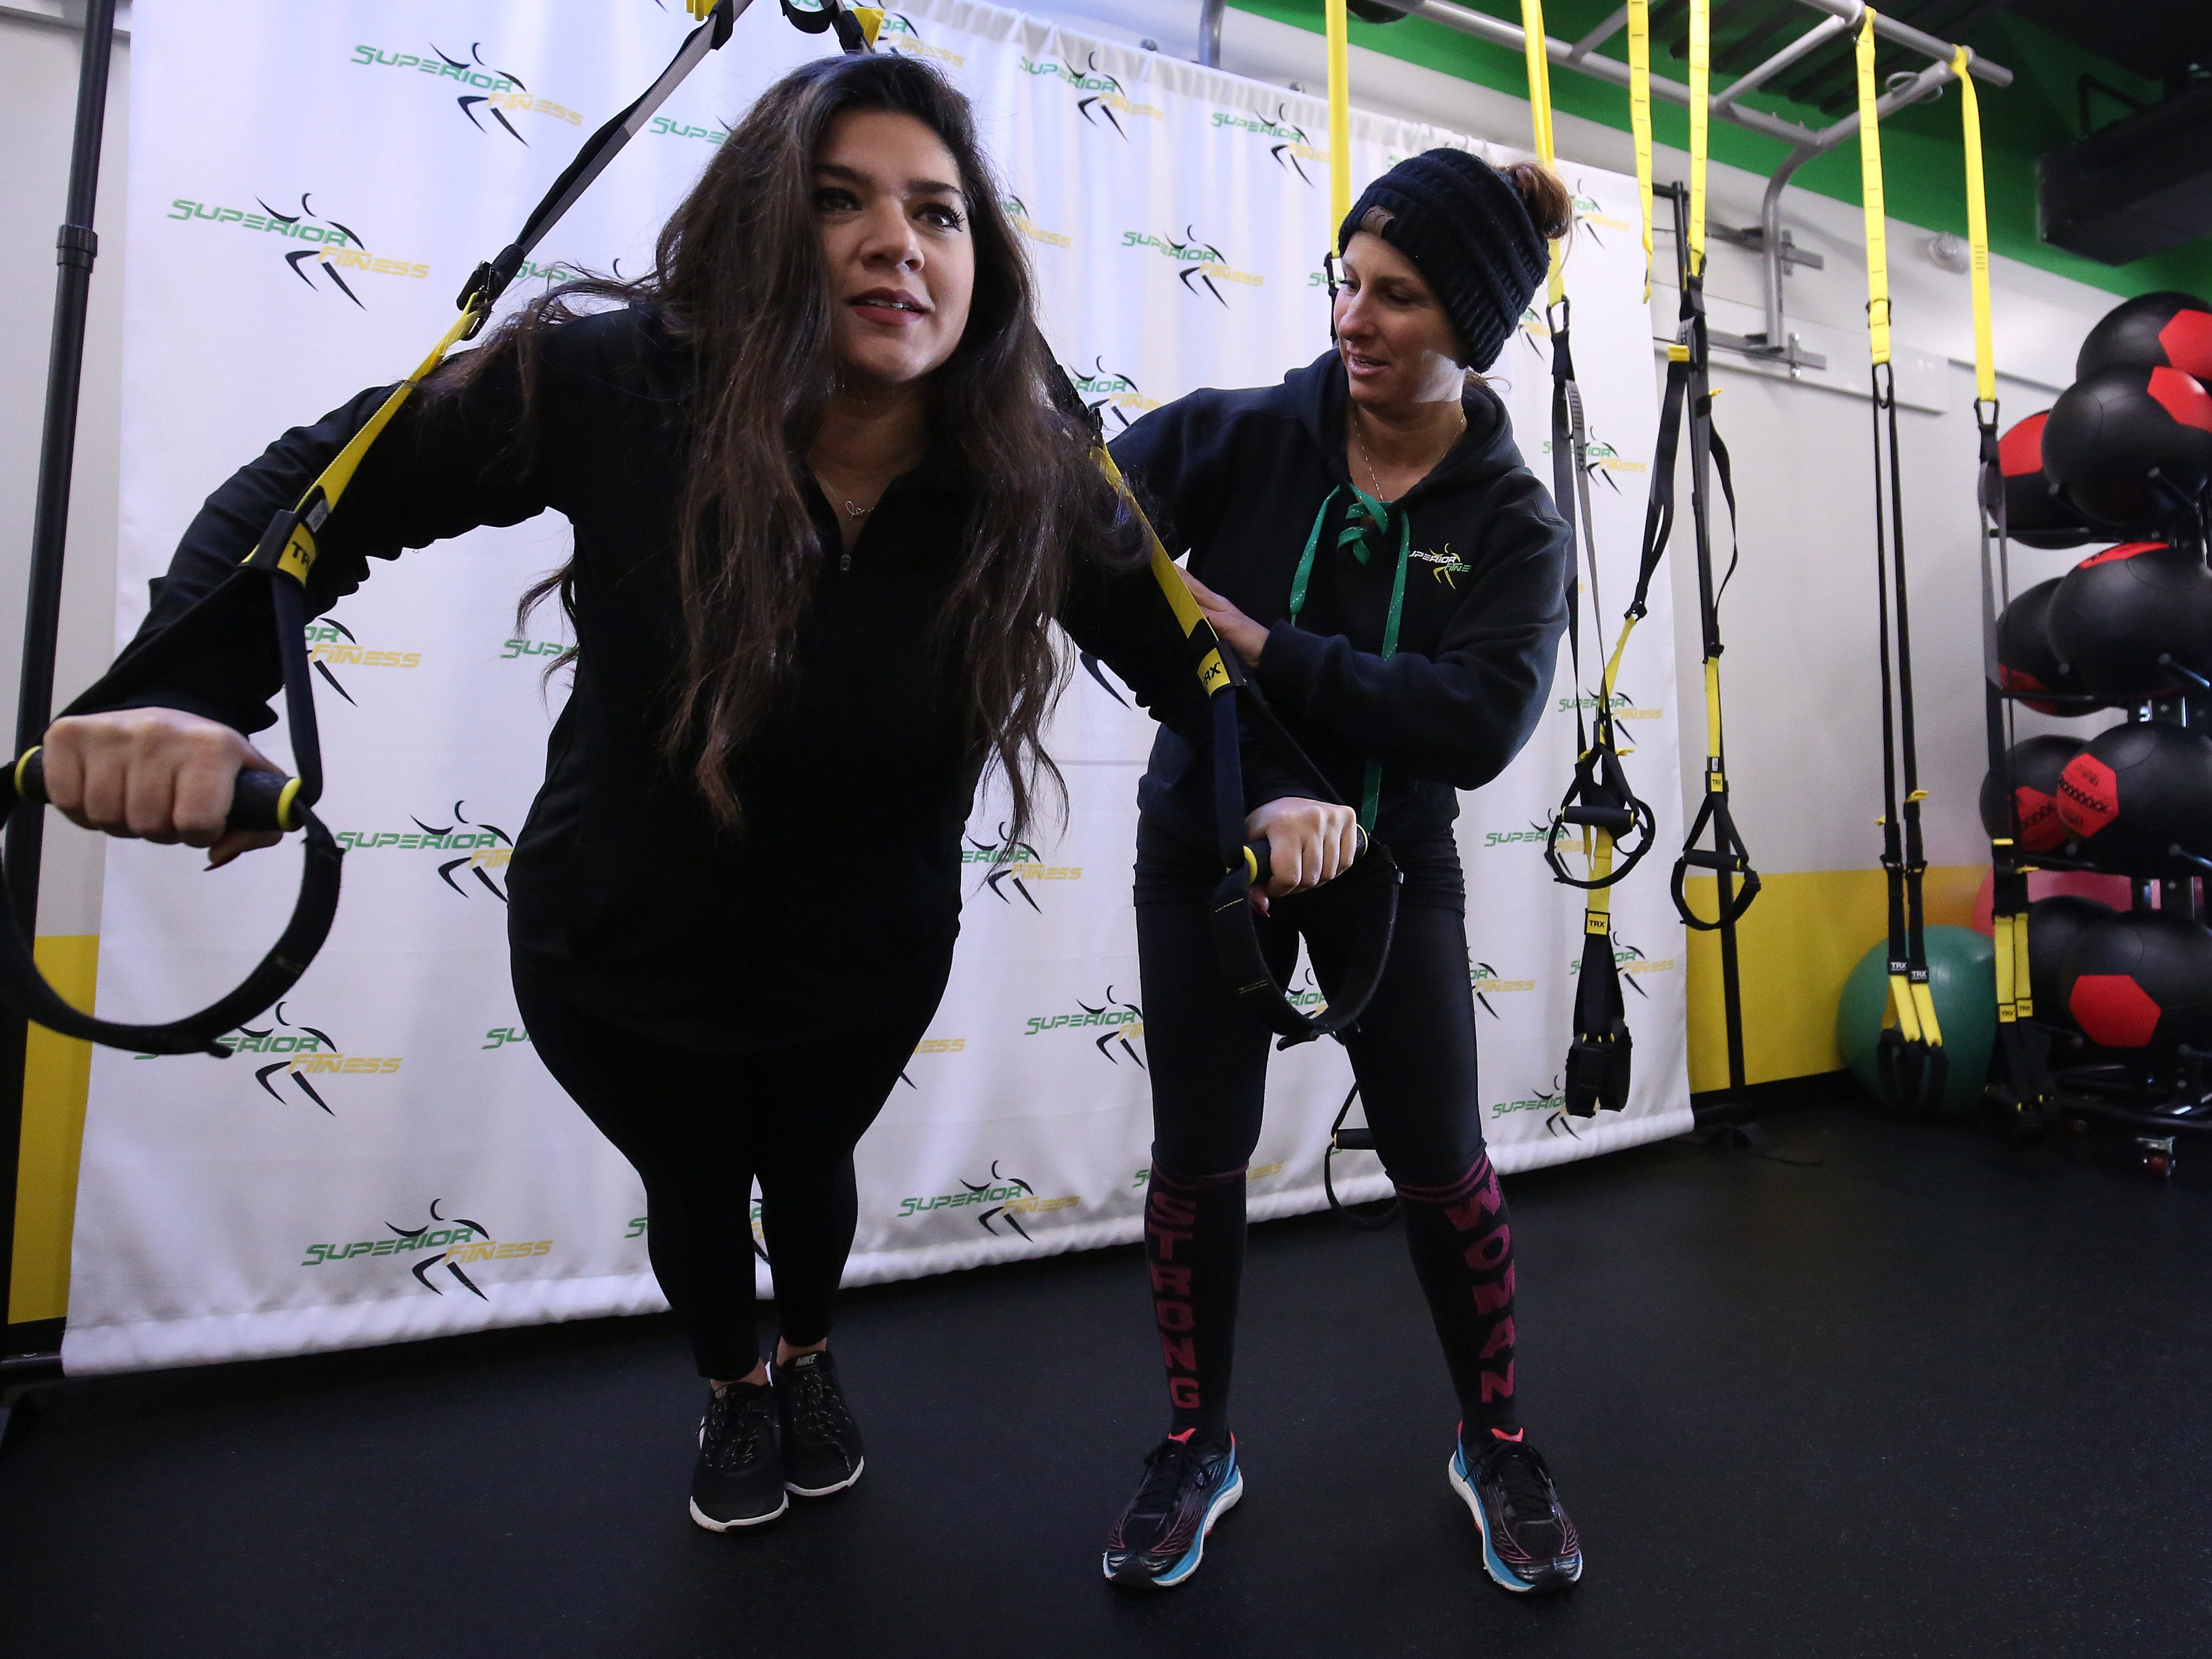 Superior Fitness in Toms River came from teacher's love for exercise